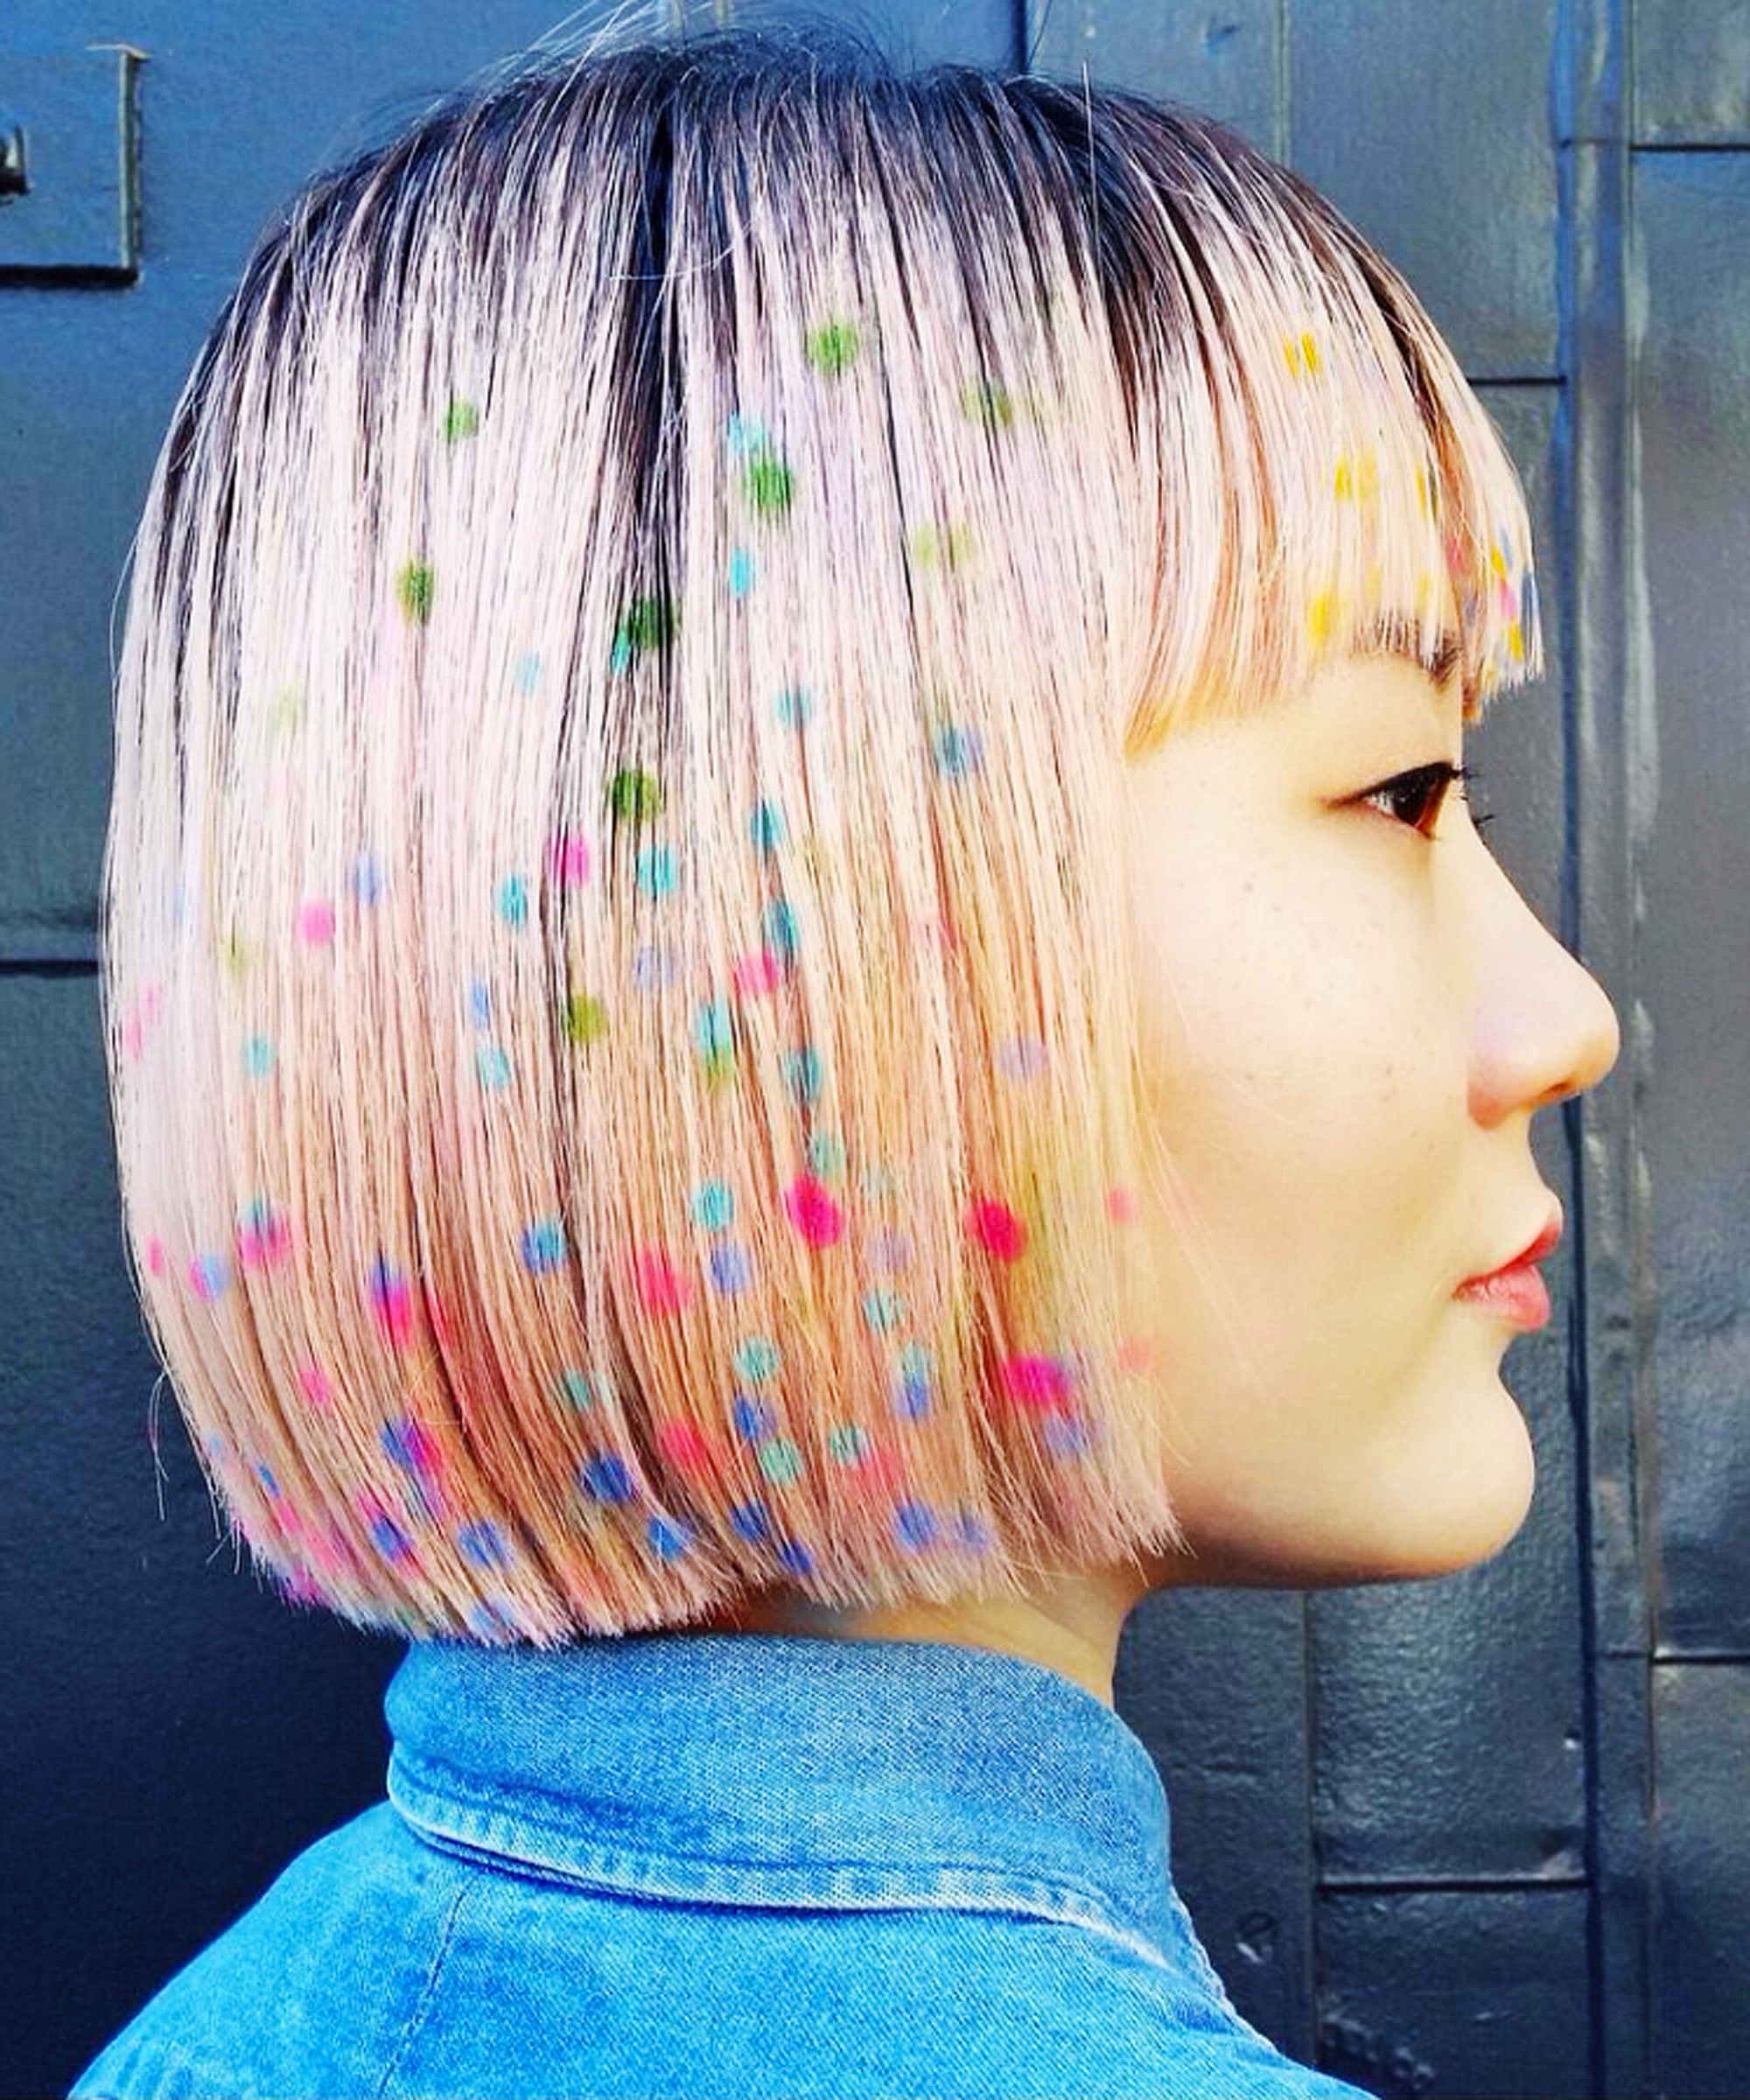 Hair Stenciling Is The Prettiest Color Trend You Need To Know